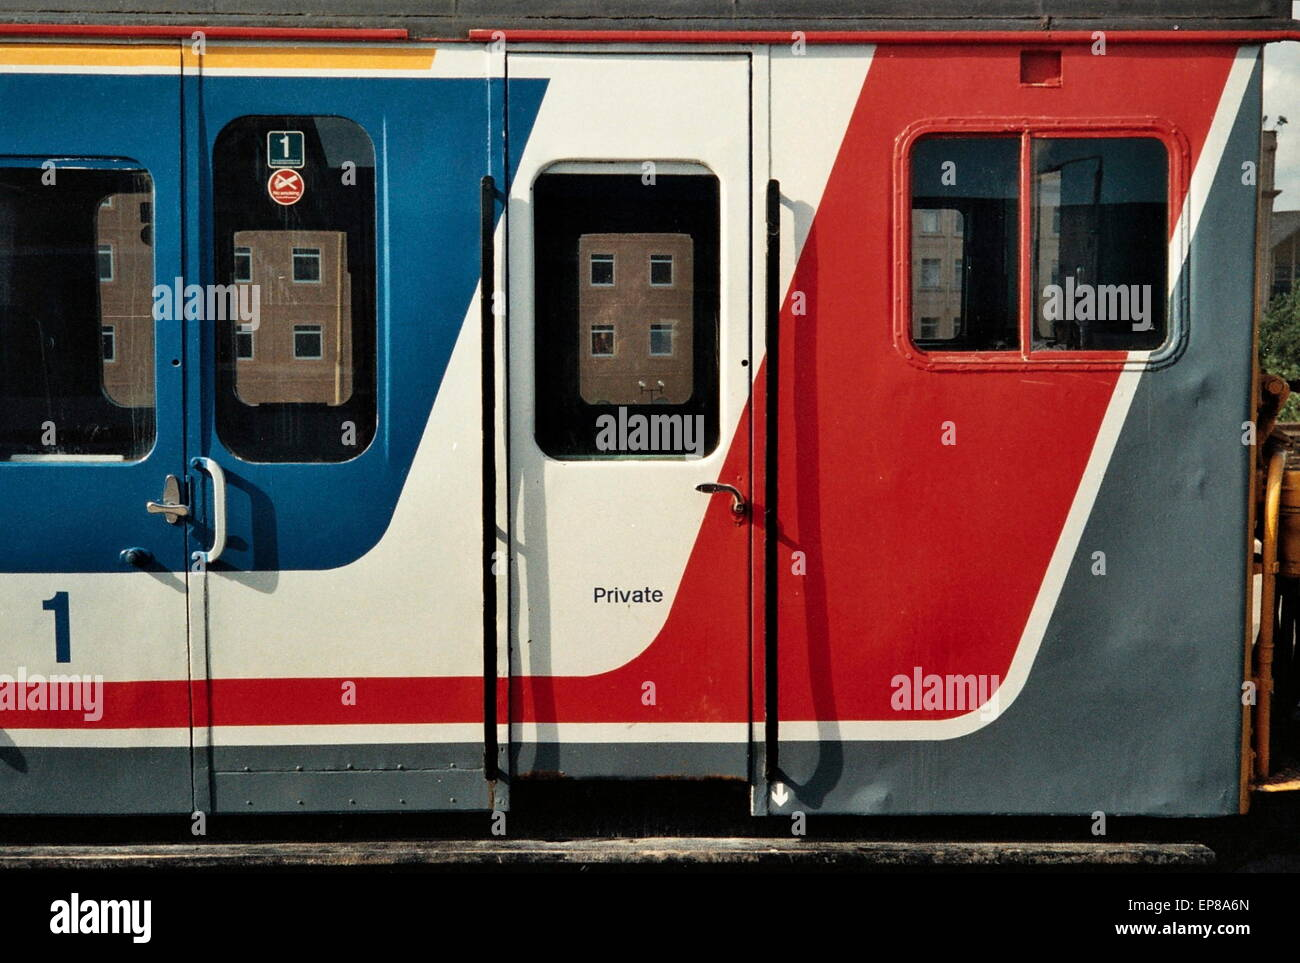 AJAXNETPHOTO. DARTFORD,ENGLAND. - RAILWAY LIVERY - EARLY 1990S SUBURBAN ELECTRIC COMMUTER PASSENGER CARRIAGE LIVERY. - Stock Image